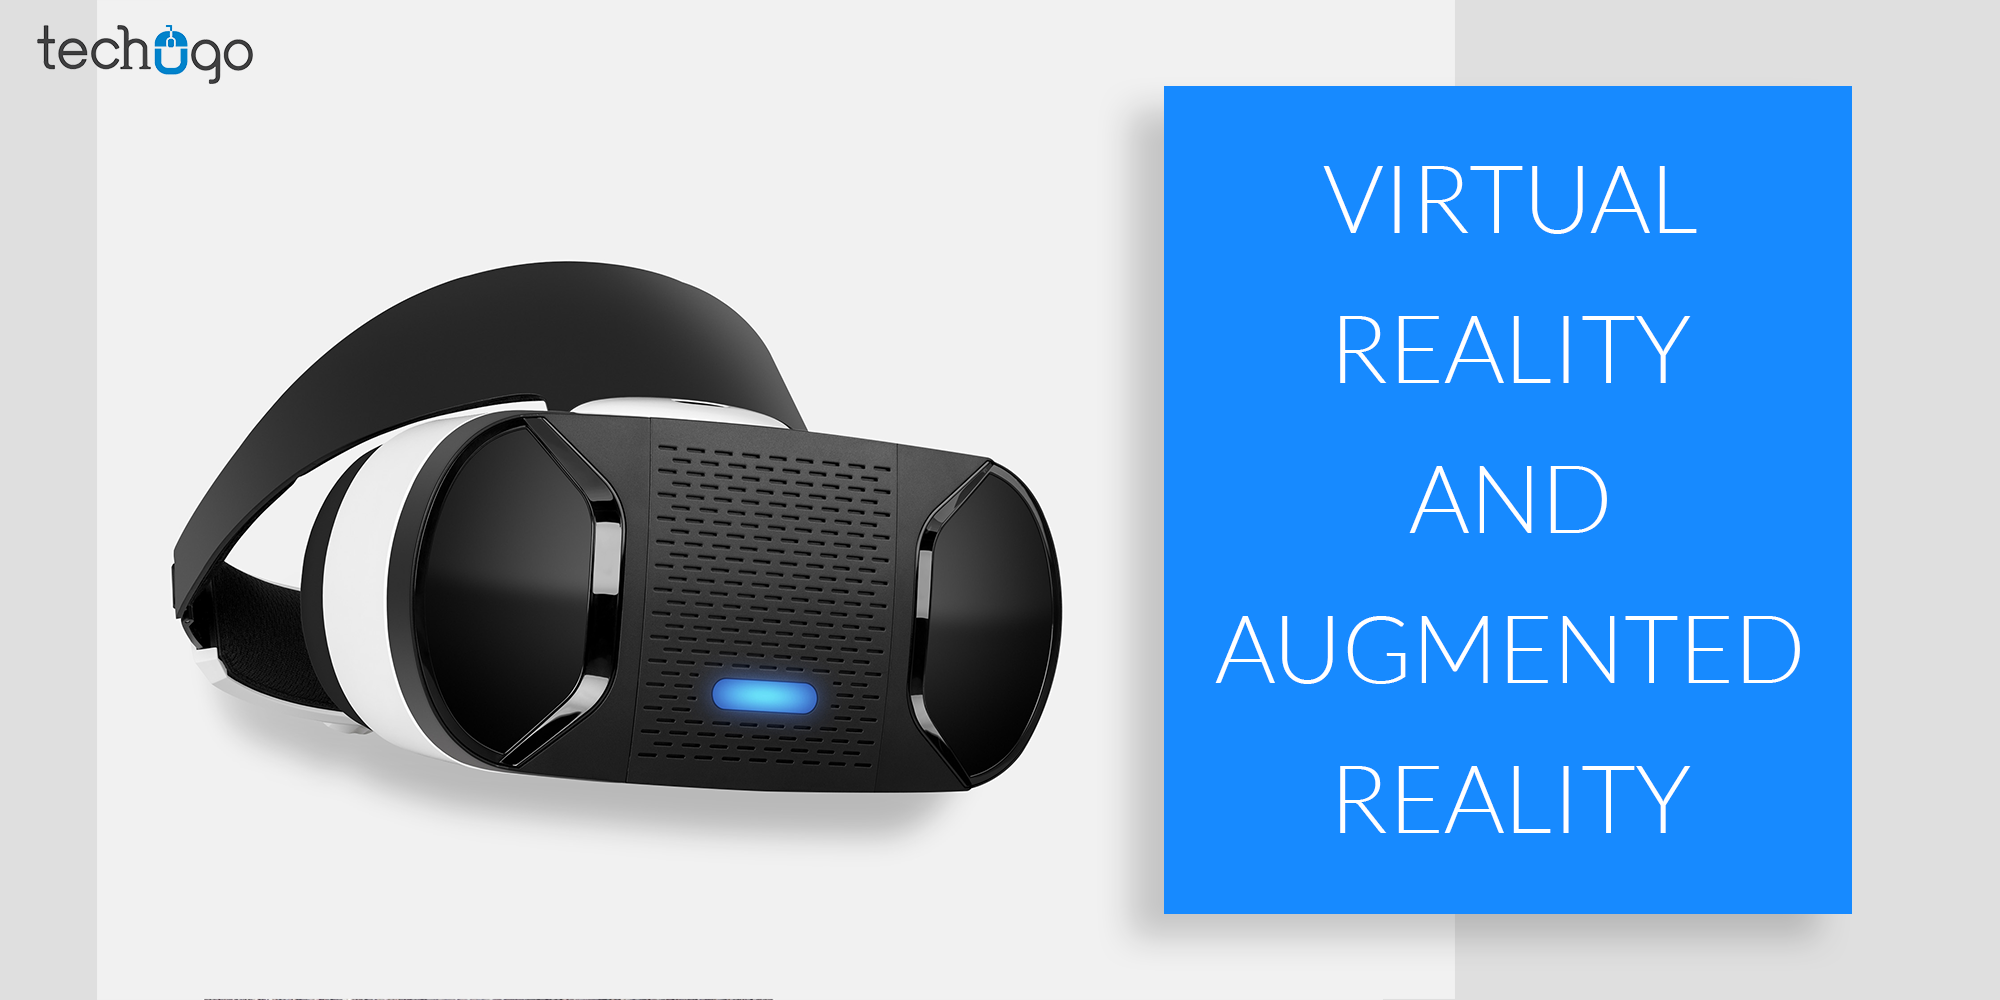 VIRTUAL REALITY AND AUGMENTED REALITY